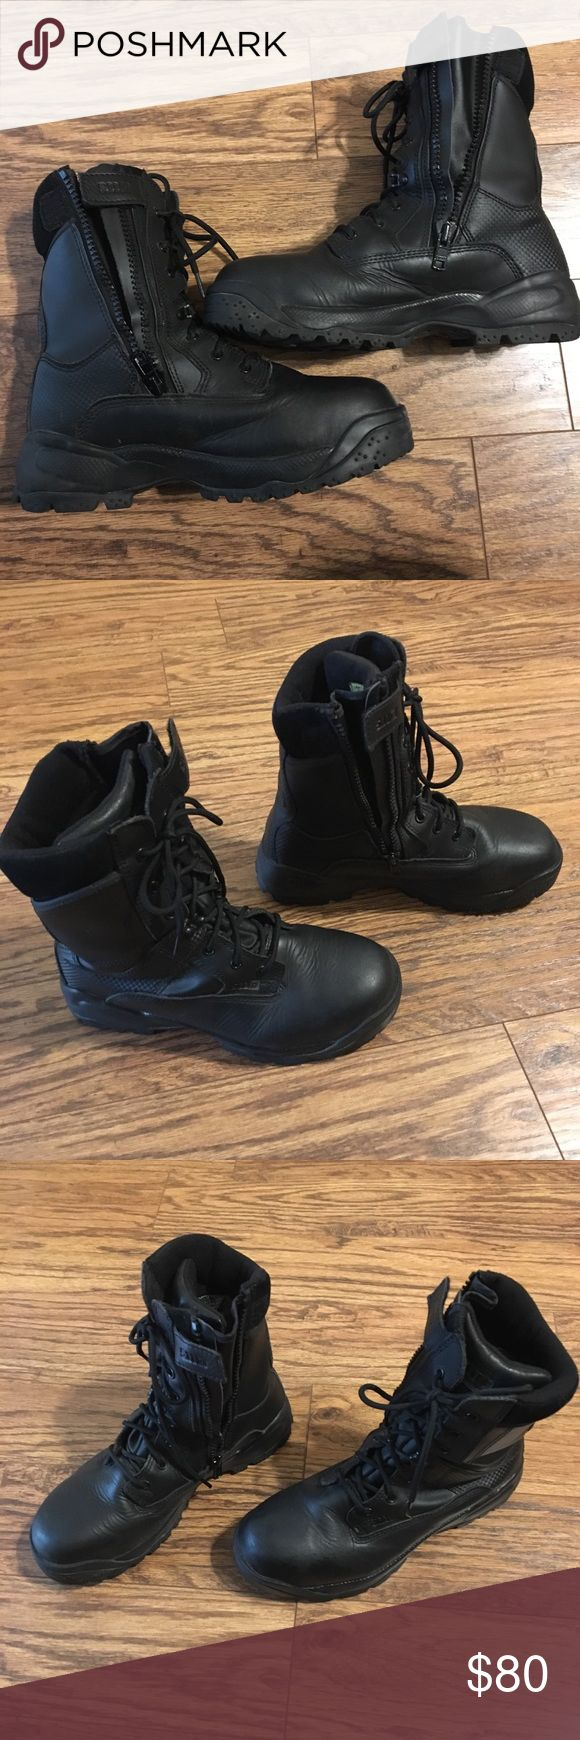 "🇺🇸 5.11 Black tactical ATAC 8"" Shield Boot🇺🇸 Waterproof/breathable bloodborne pathogen resistant membrane, a CSA/ASTM certified composite safety toe and a puncture resistant midsole.  An oil and slip resistant outsole, anti-bacterial lining and side-zip functionality for easy on and off.  CSA/ASTM certified safety toe Waterproof/breathable BPR membrane 5.11 Shock Mitigation System® Antibacterial and moisture-wicking lining Cushioned insole Oil and slip resistant, no-squeak outsole…"